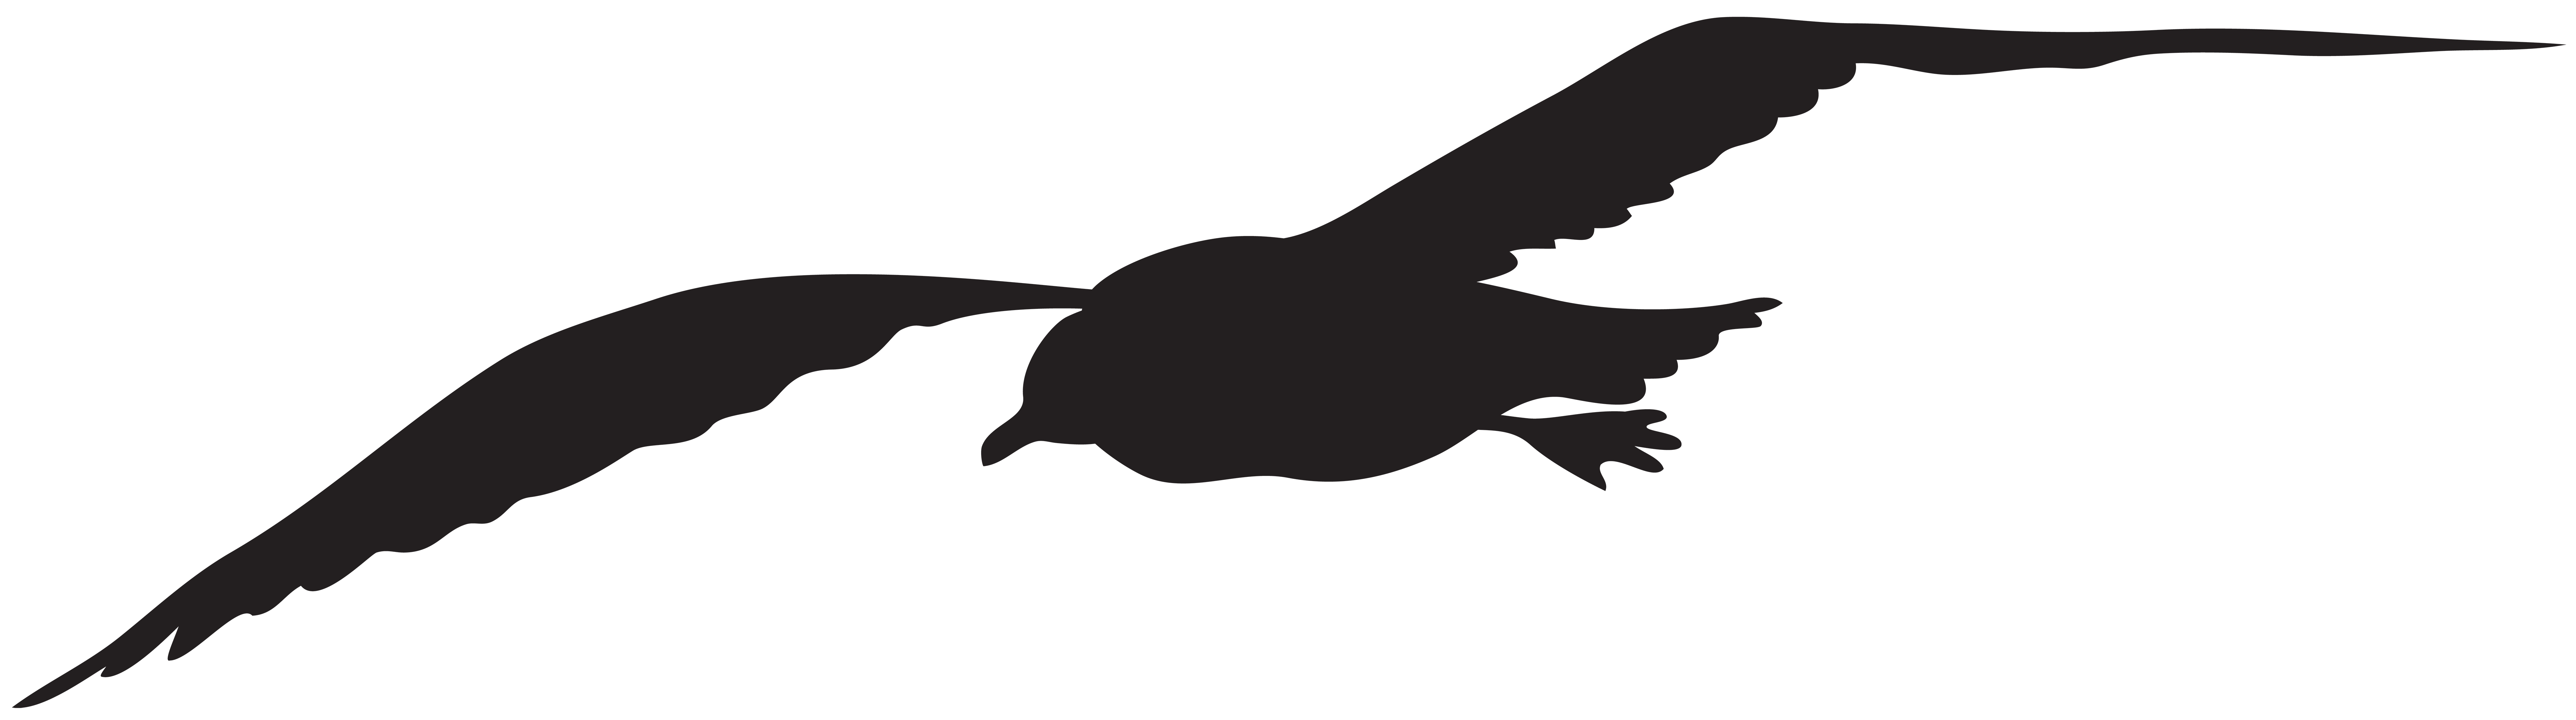 Seagull clipart png. Silhouette clip art image